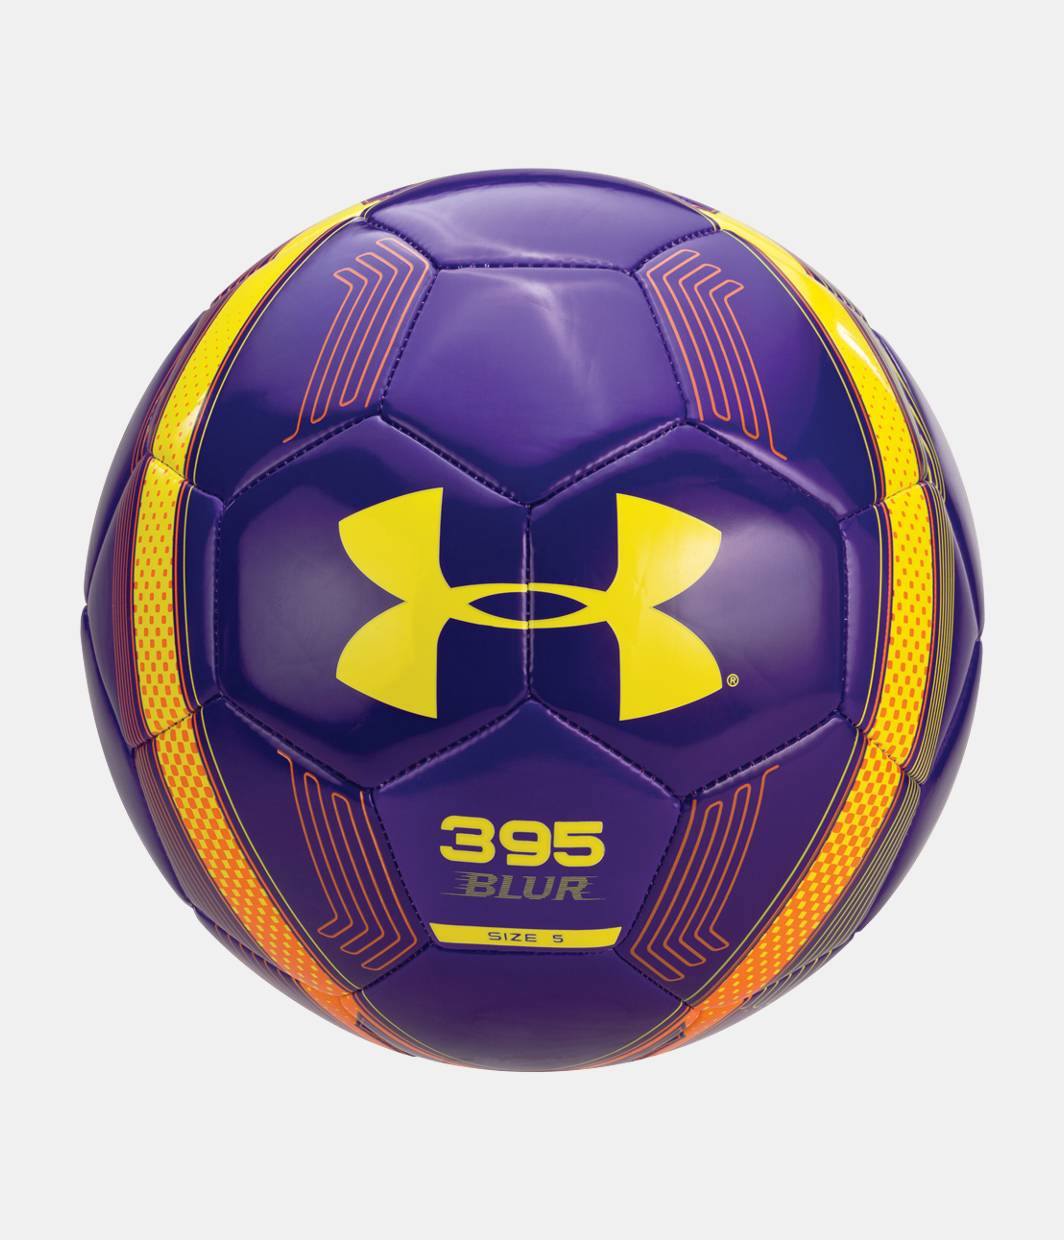 dacdbd529d67c ... UA 395 Soccer Ball Under Armour US ...